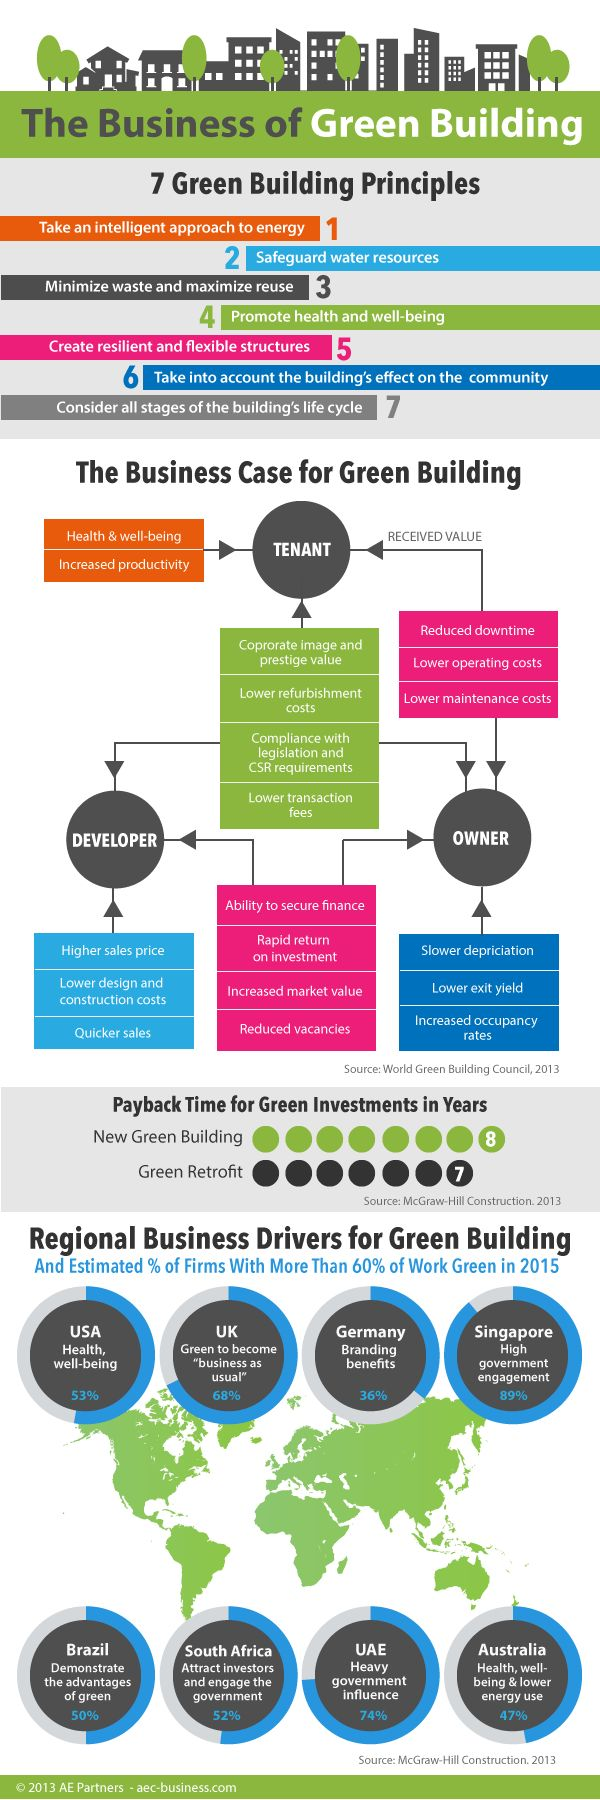 The Business of Green Building #inforgraphic #greenbuilding #green